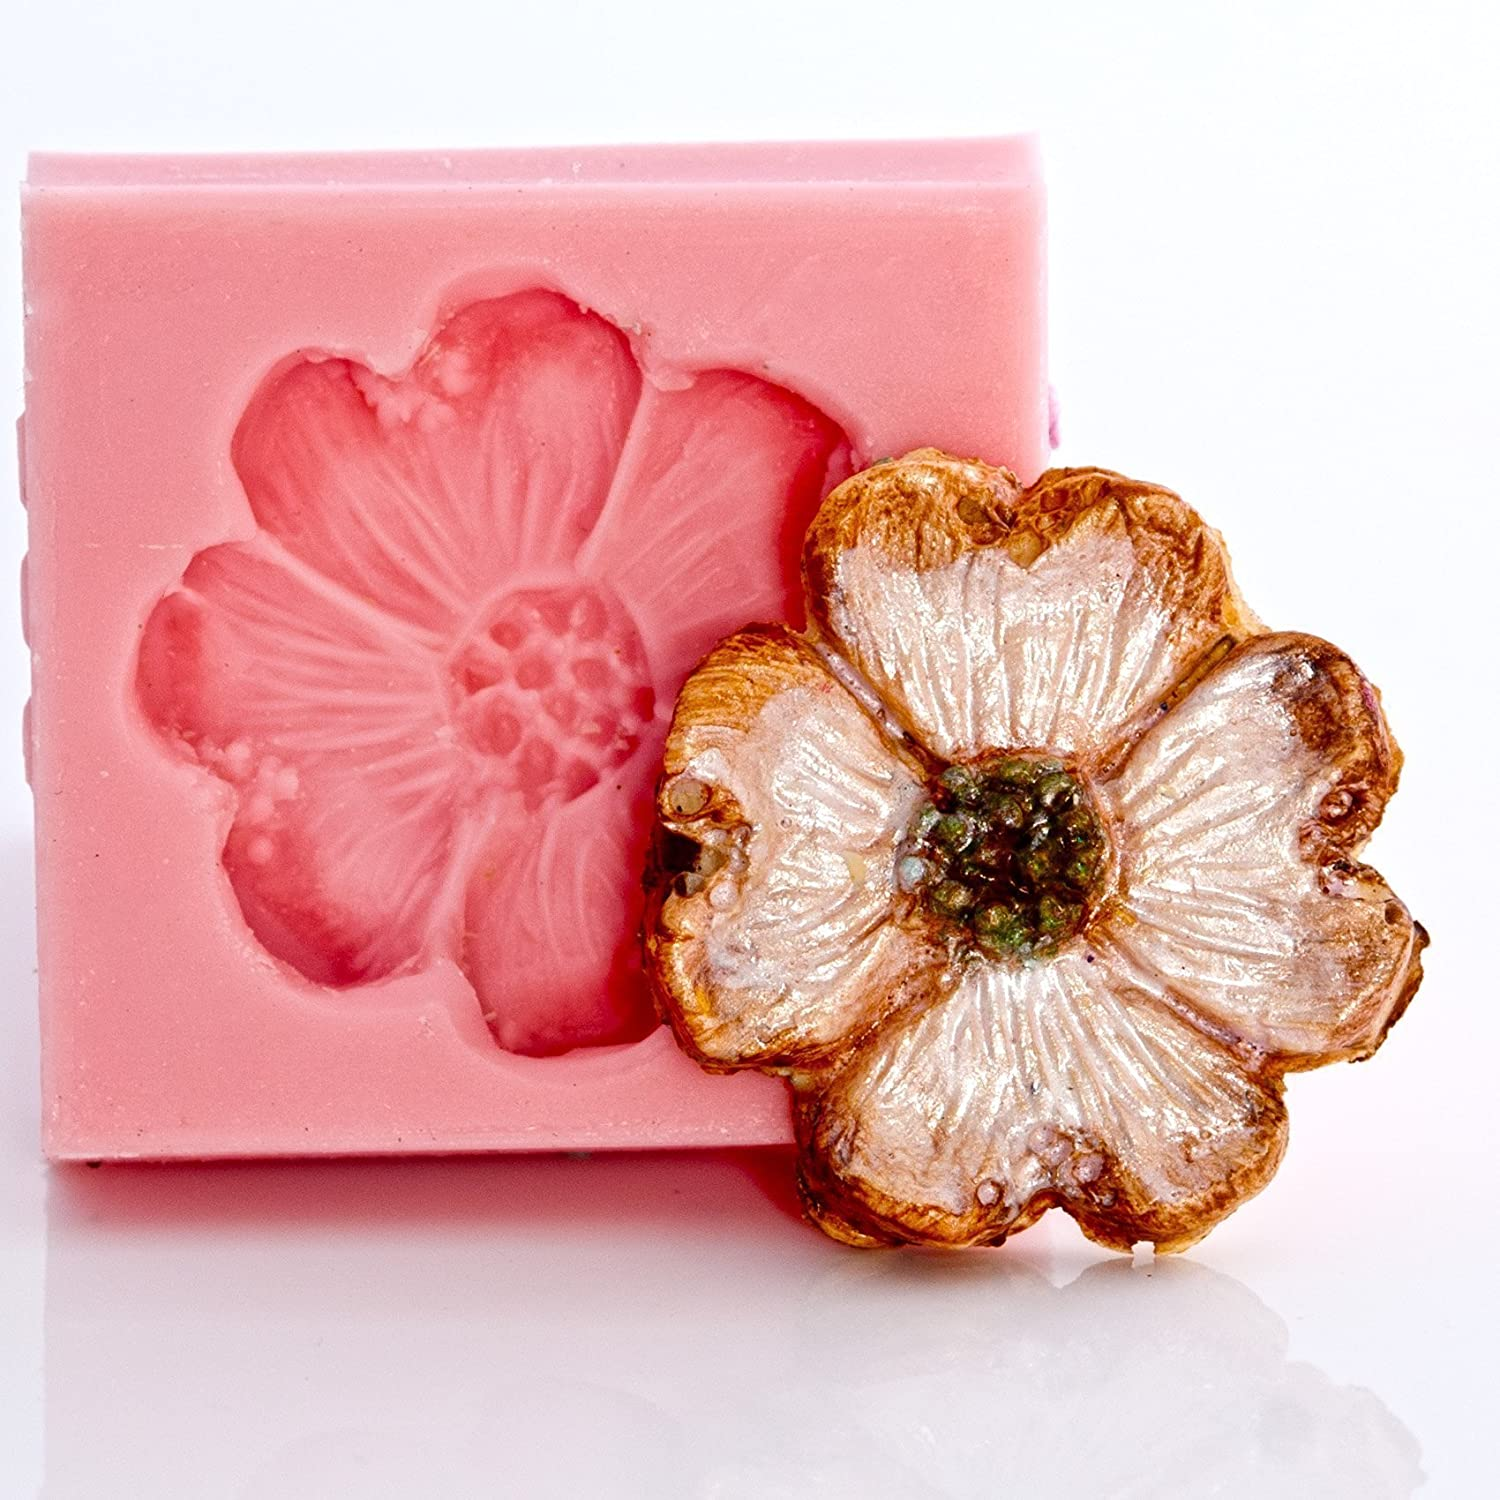 Dogwood Flower Silicone Mold Food Safe Fondant, Chocolate, Candy, Resin, Polymer Clay, Jewelry, Craft Mold. Flexible and easy to use.